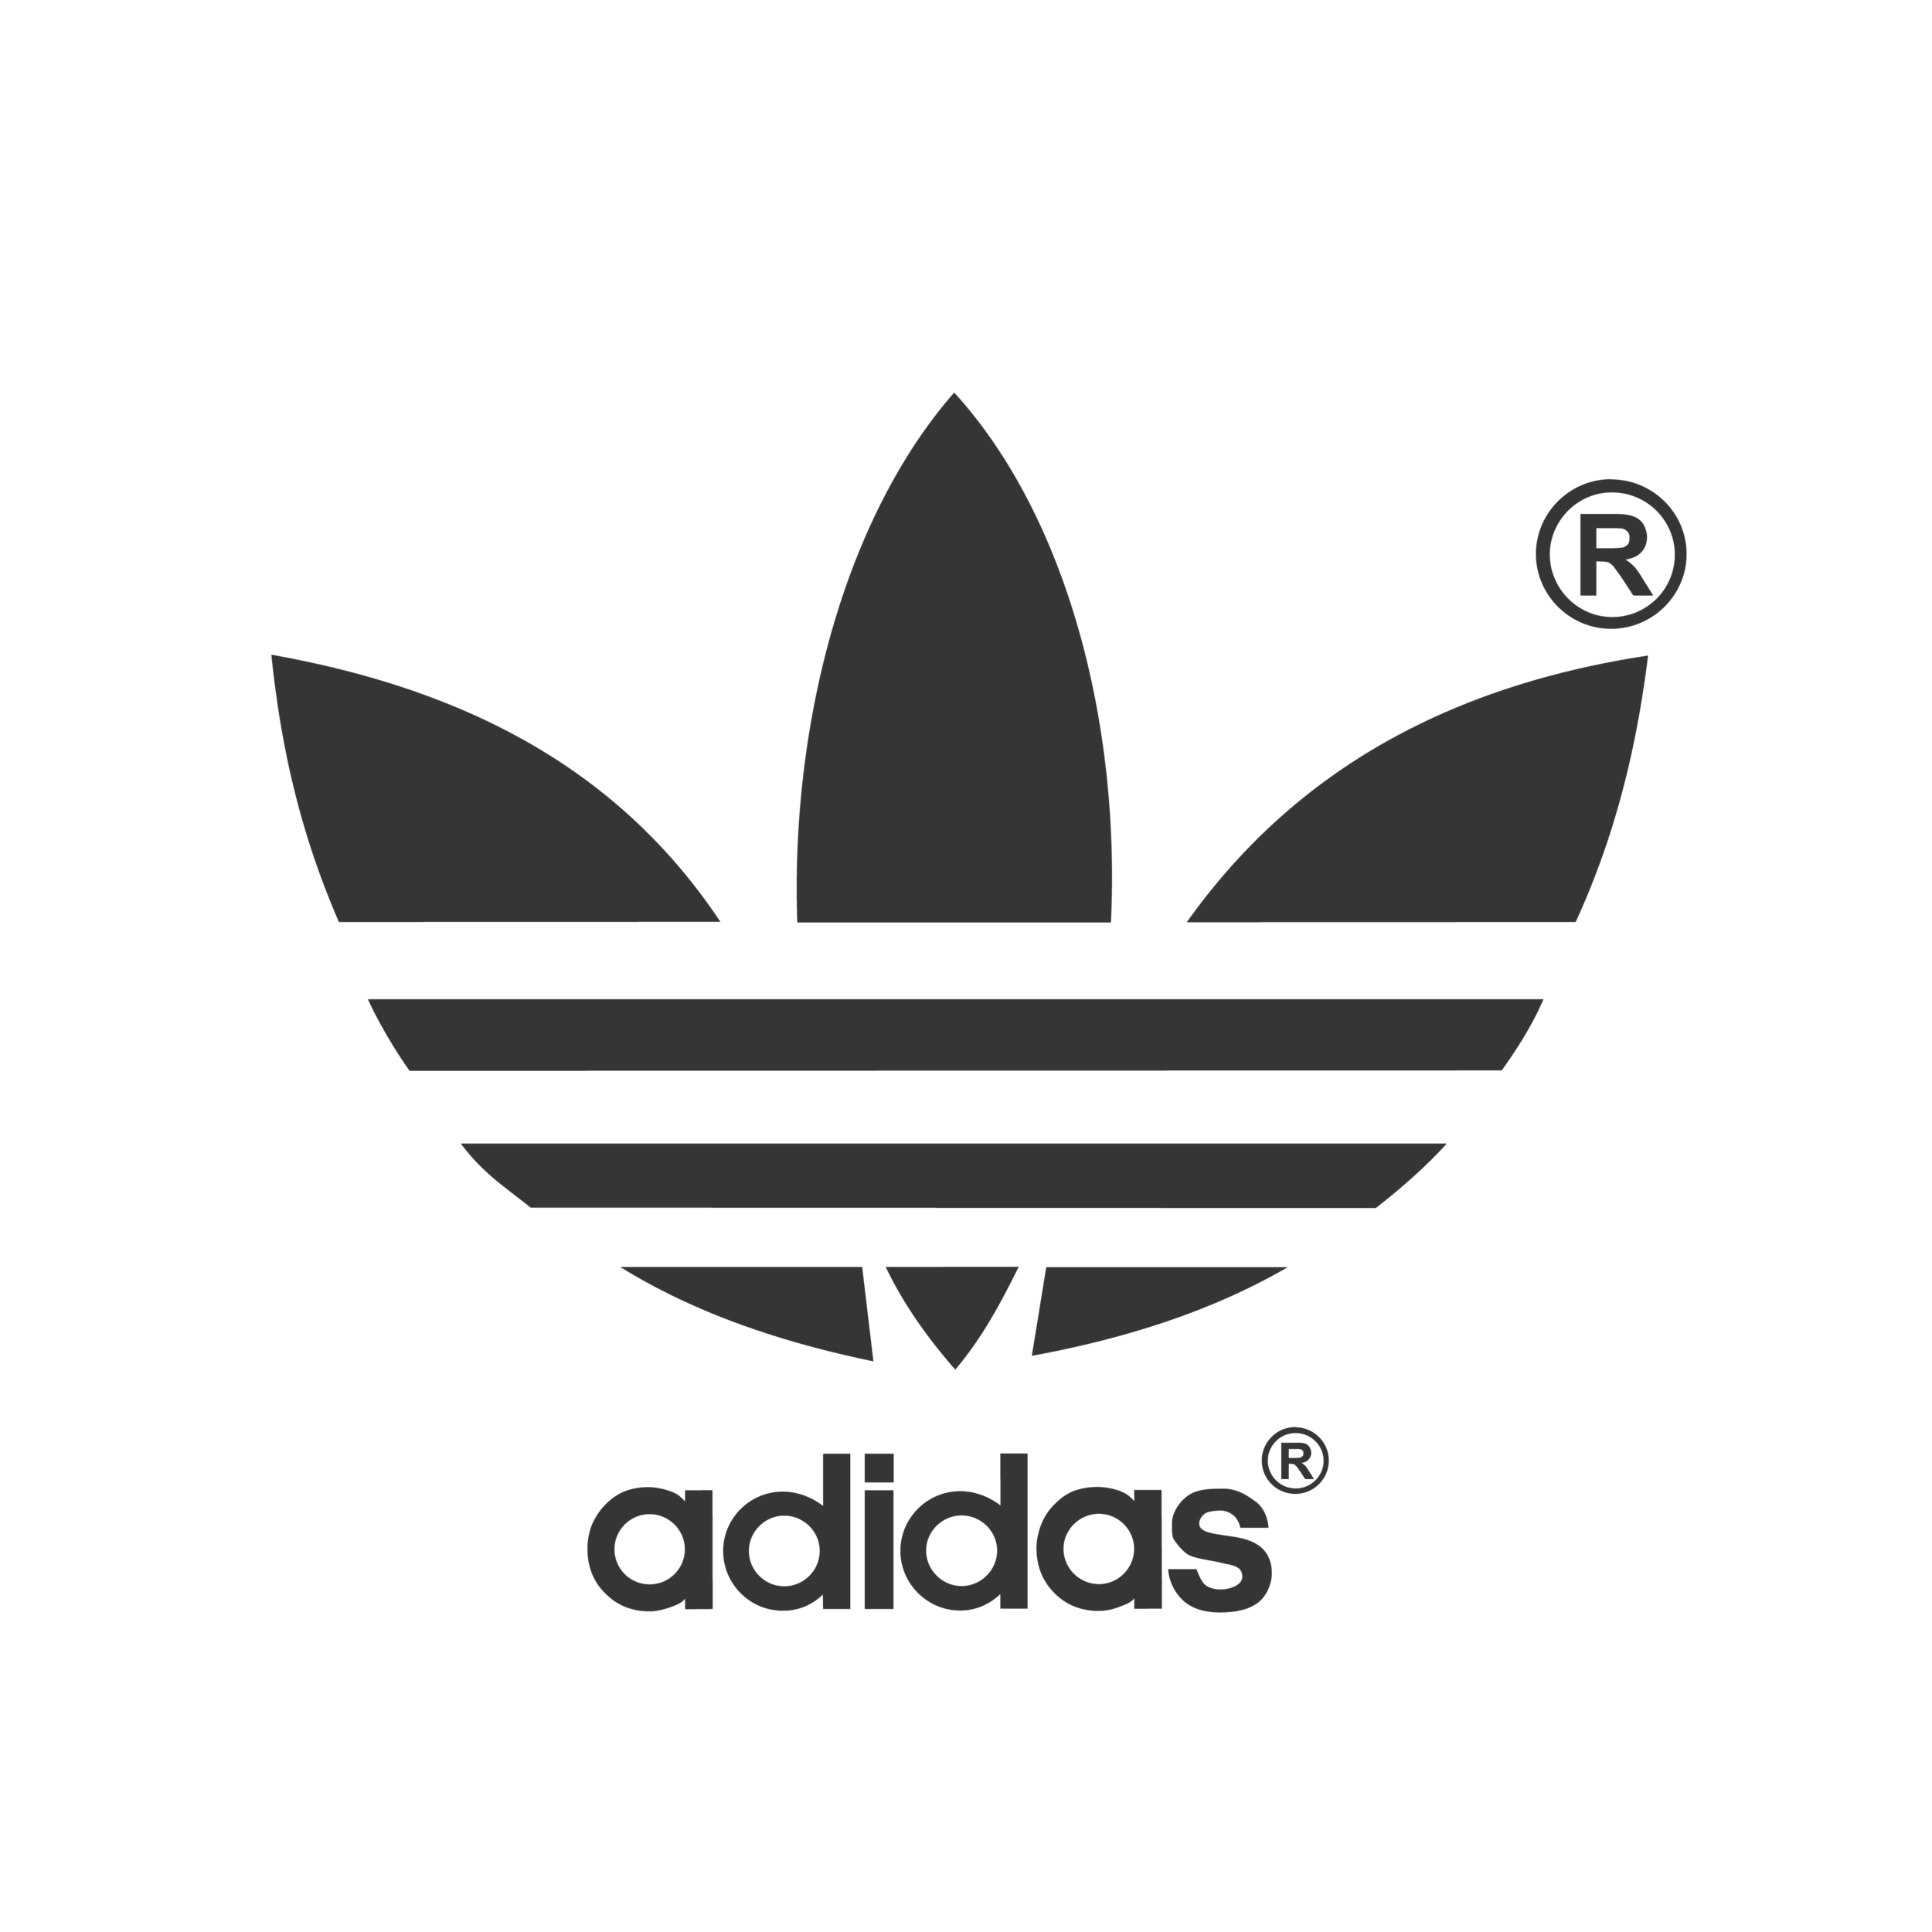 Addidas.png